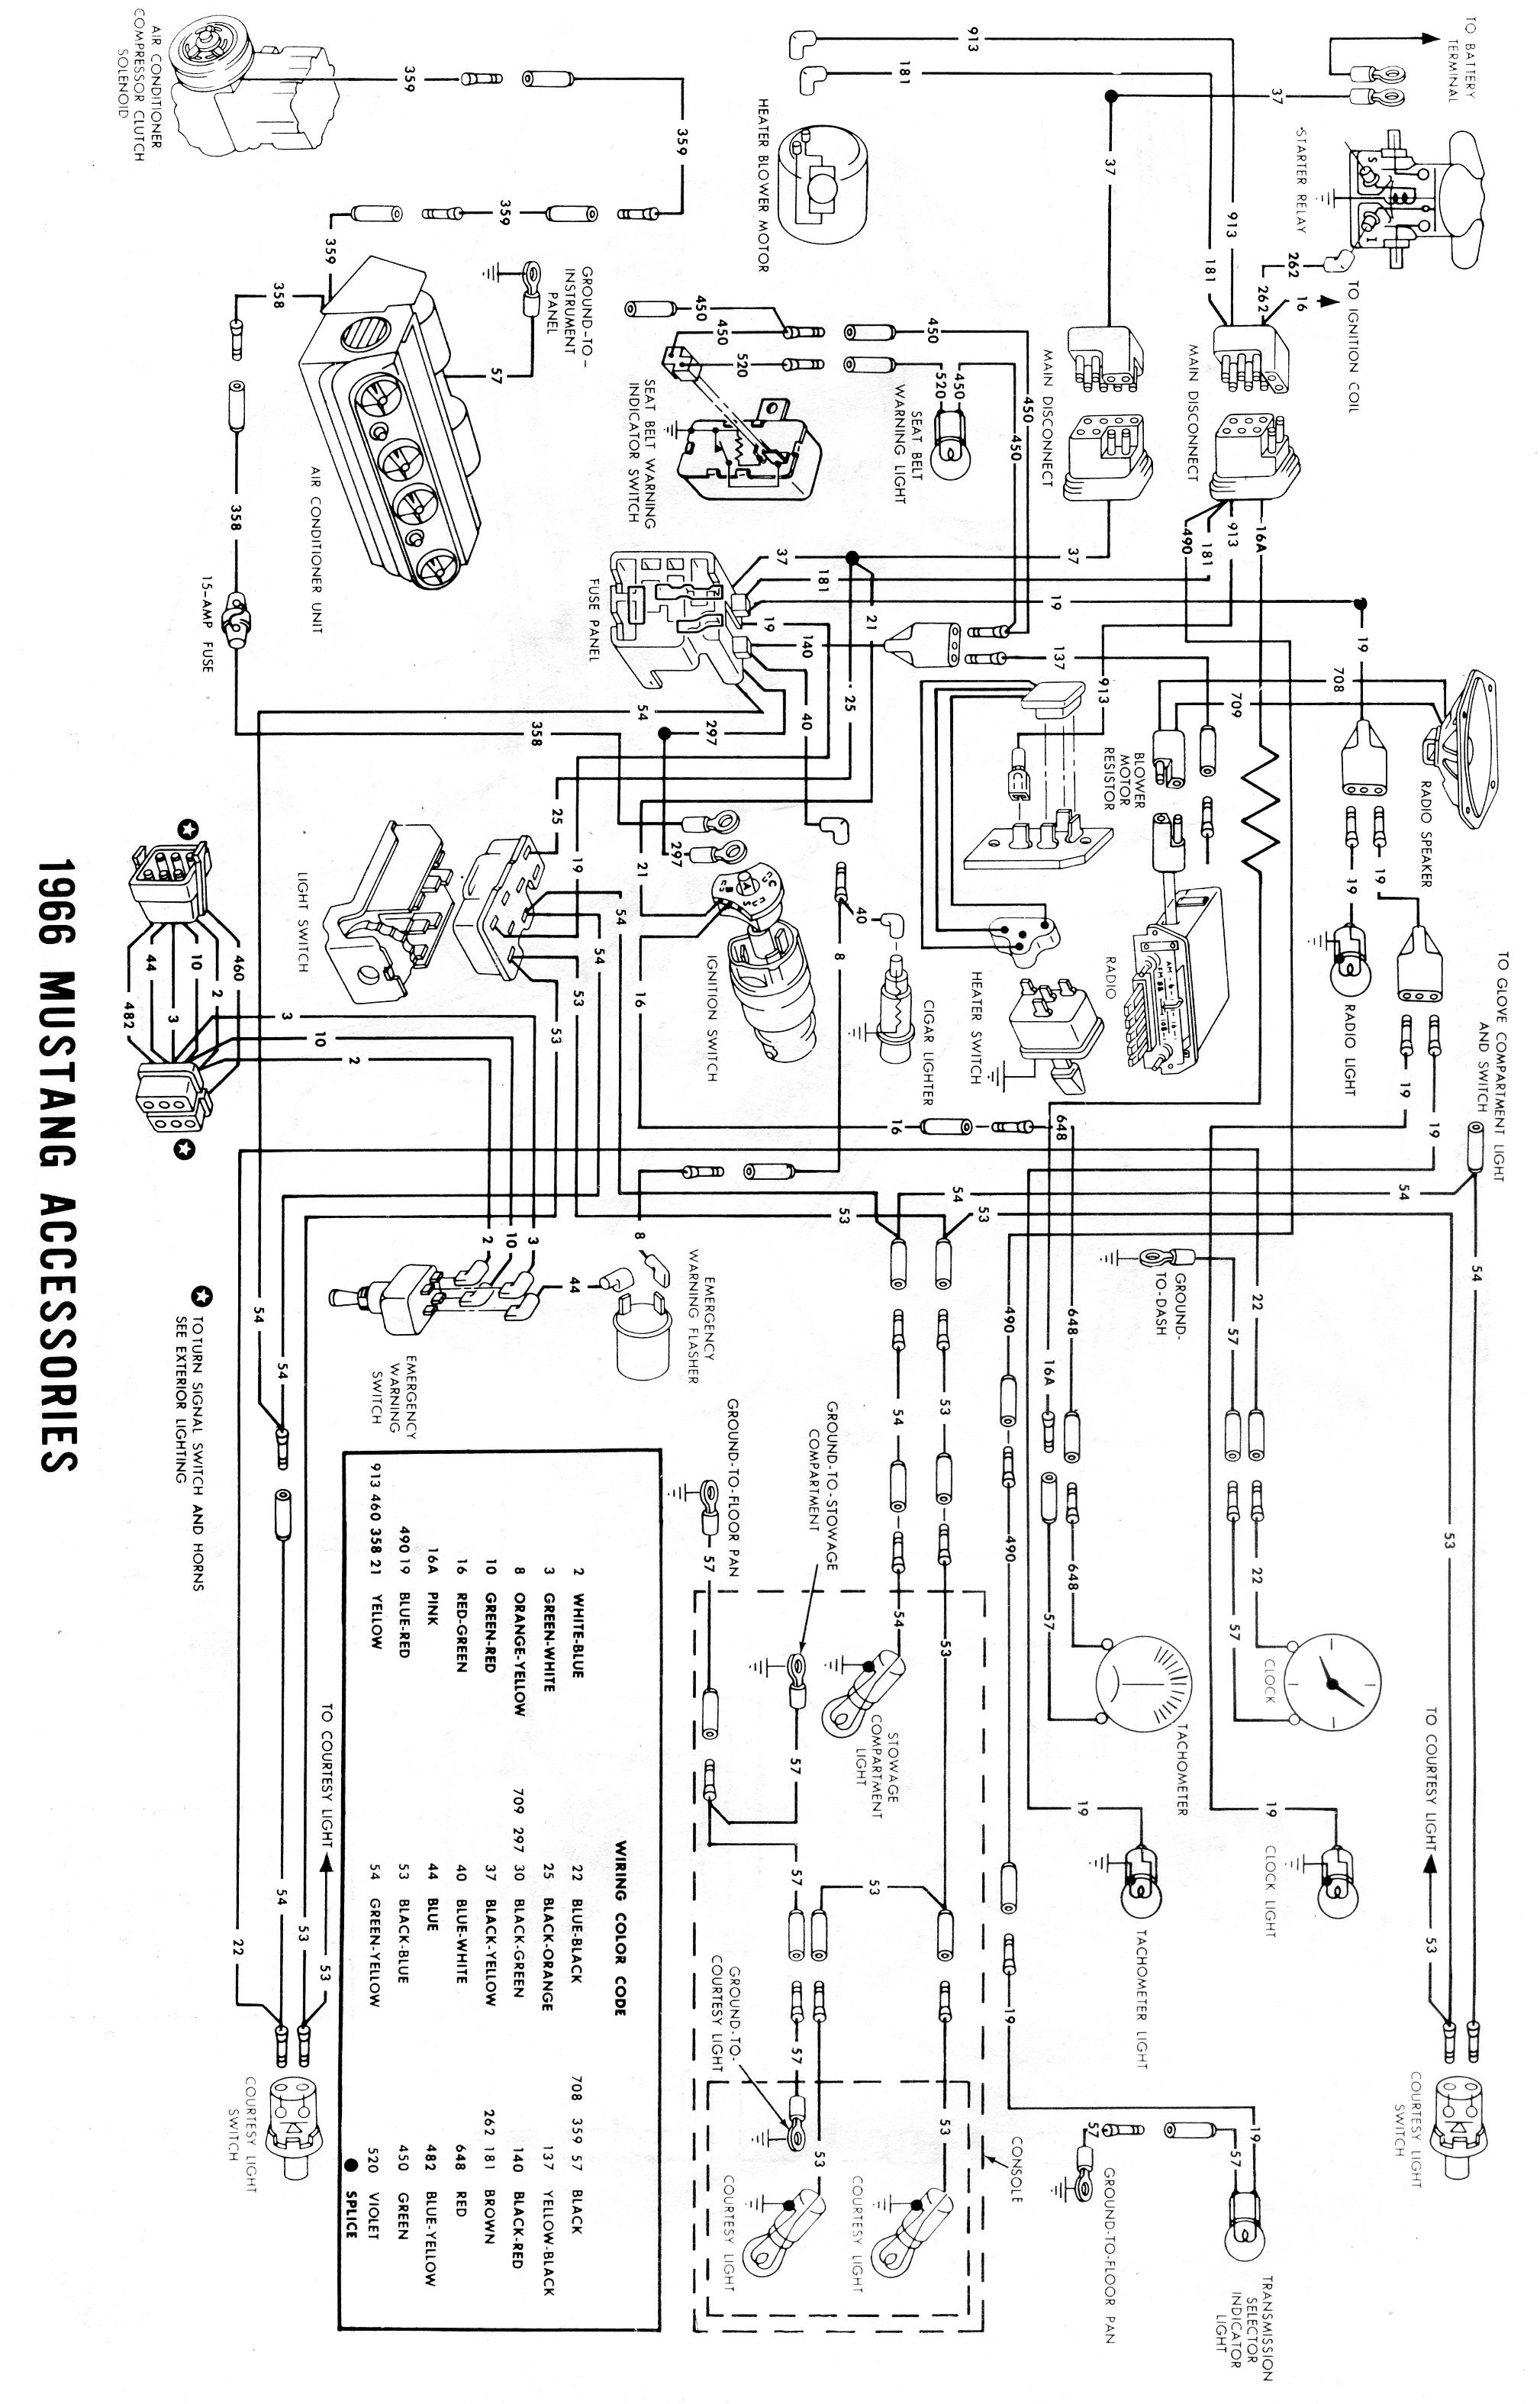 1967 ford mustang ignition wiring diagram images 1966 ford mustang wiring diagram wiring diagrams and schematics